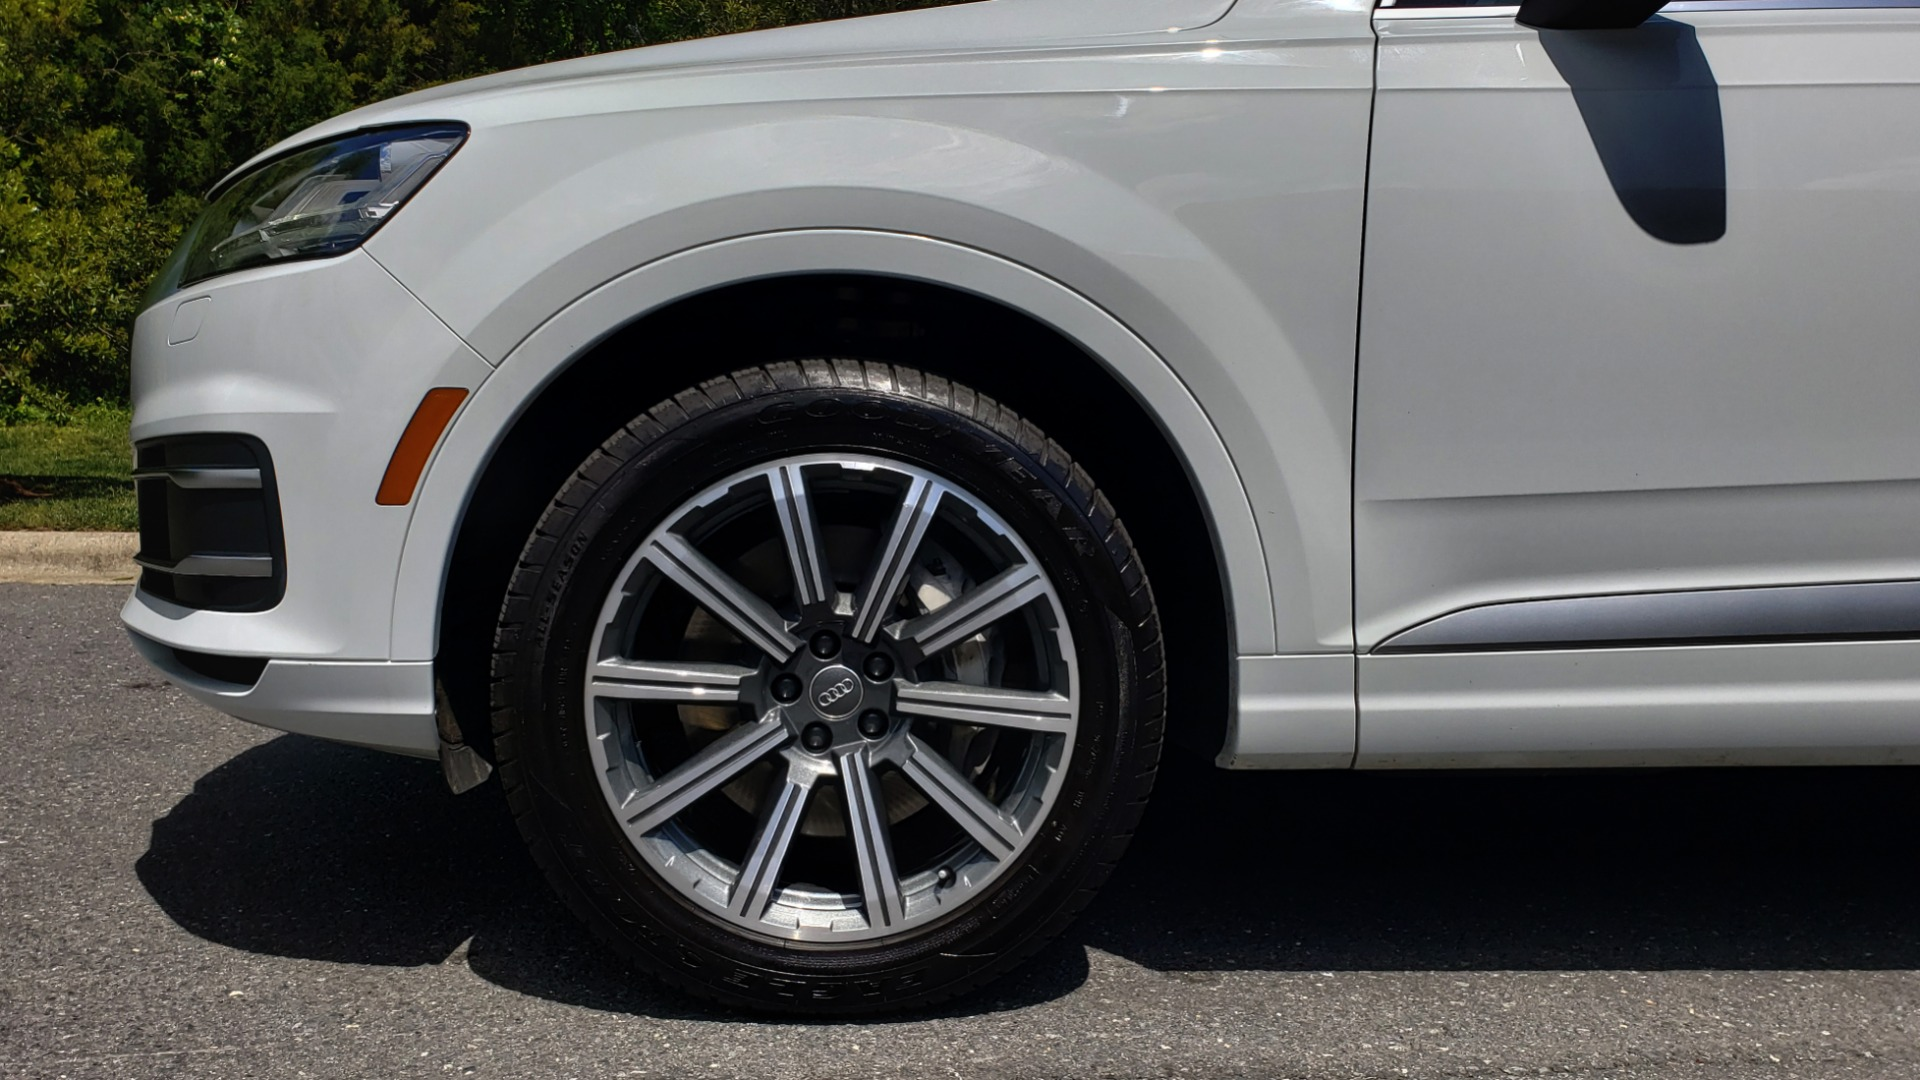 Used 2017 Audi Q7 PREMIUM PLUS / VISION PKG / NAV / PANO-ROOF / 3-ROW / REARVIEW for sale Sold at Formula Imports in Charlotte NC 28227 85